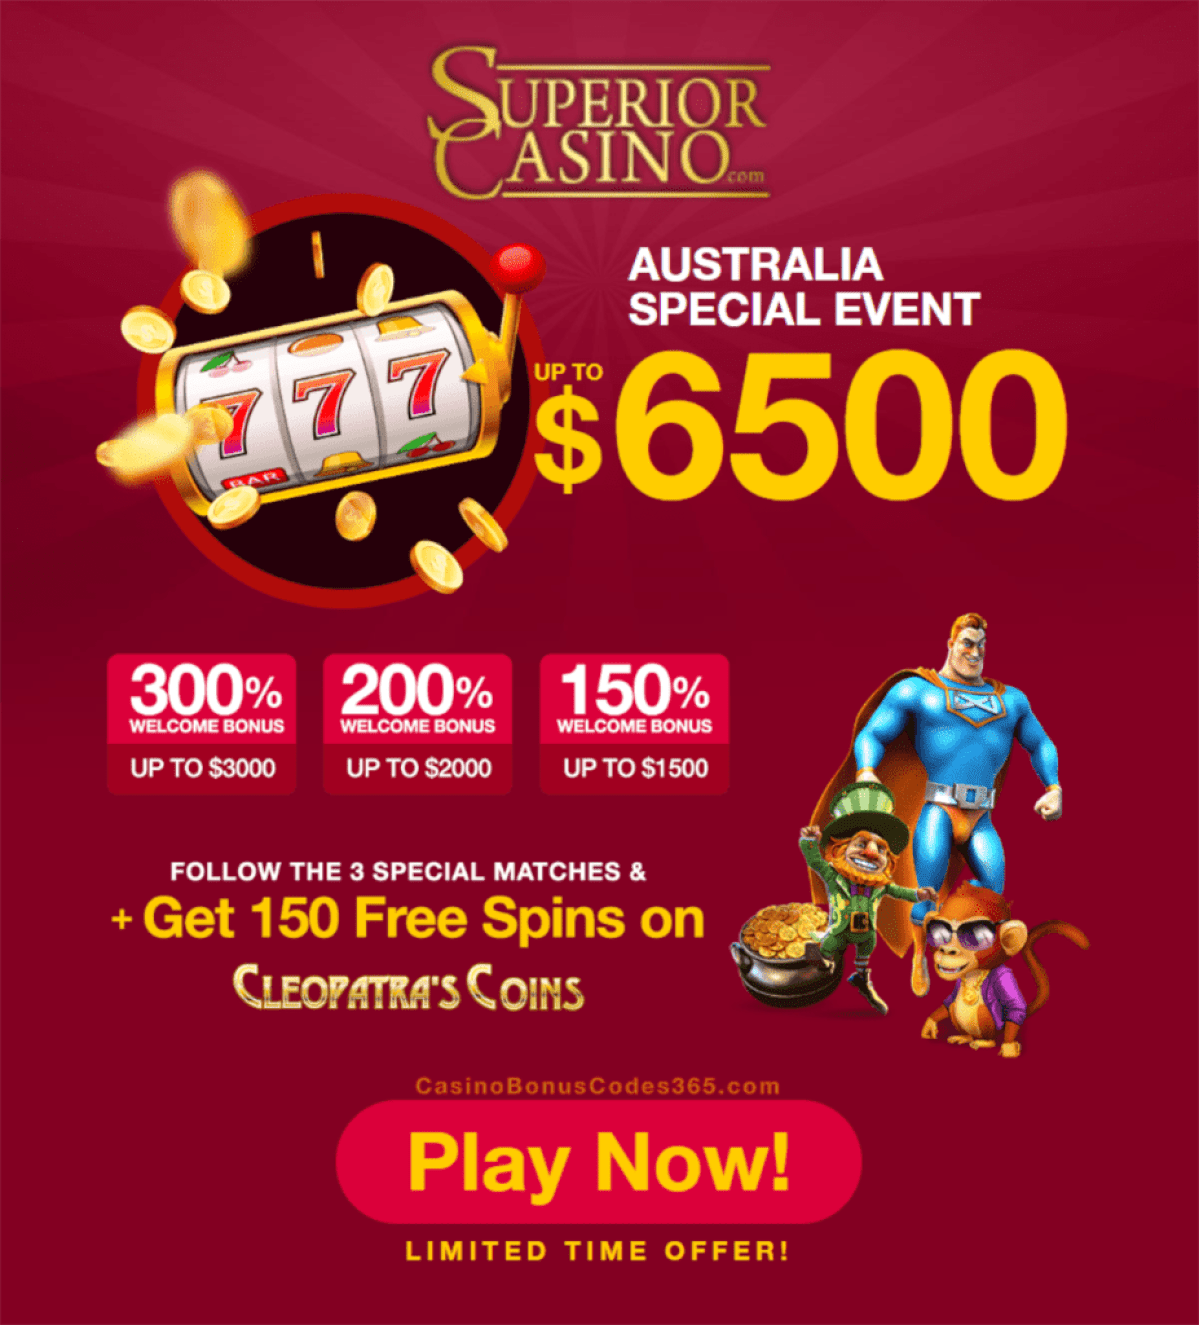 Superior Casino $6500 Bonus plus 150 FREE Spins August Australia Special Event Offer Rival Gaming Cleopatra's Coins